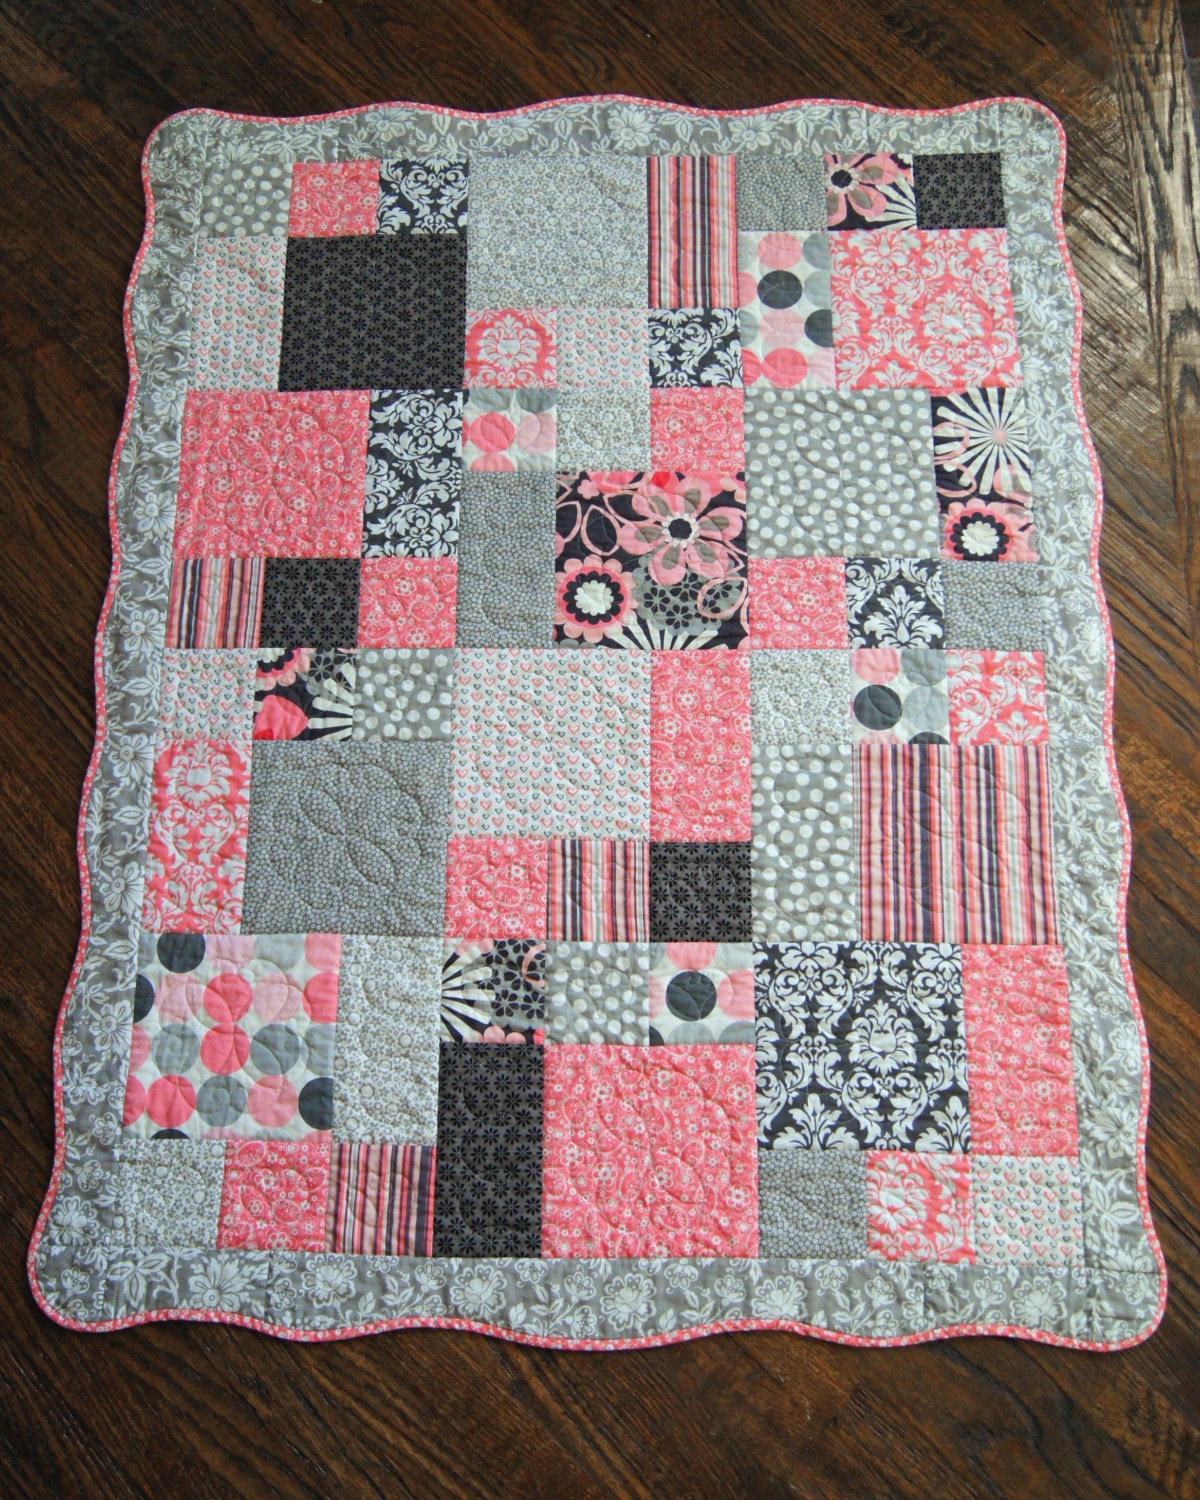 Quilt Patterns For A Girl : Custom Baby Quilt Made to Order Girl-Boy-Neutral by iloveicreate